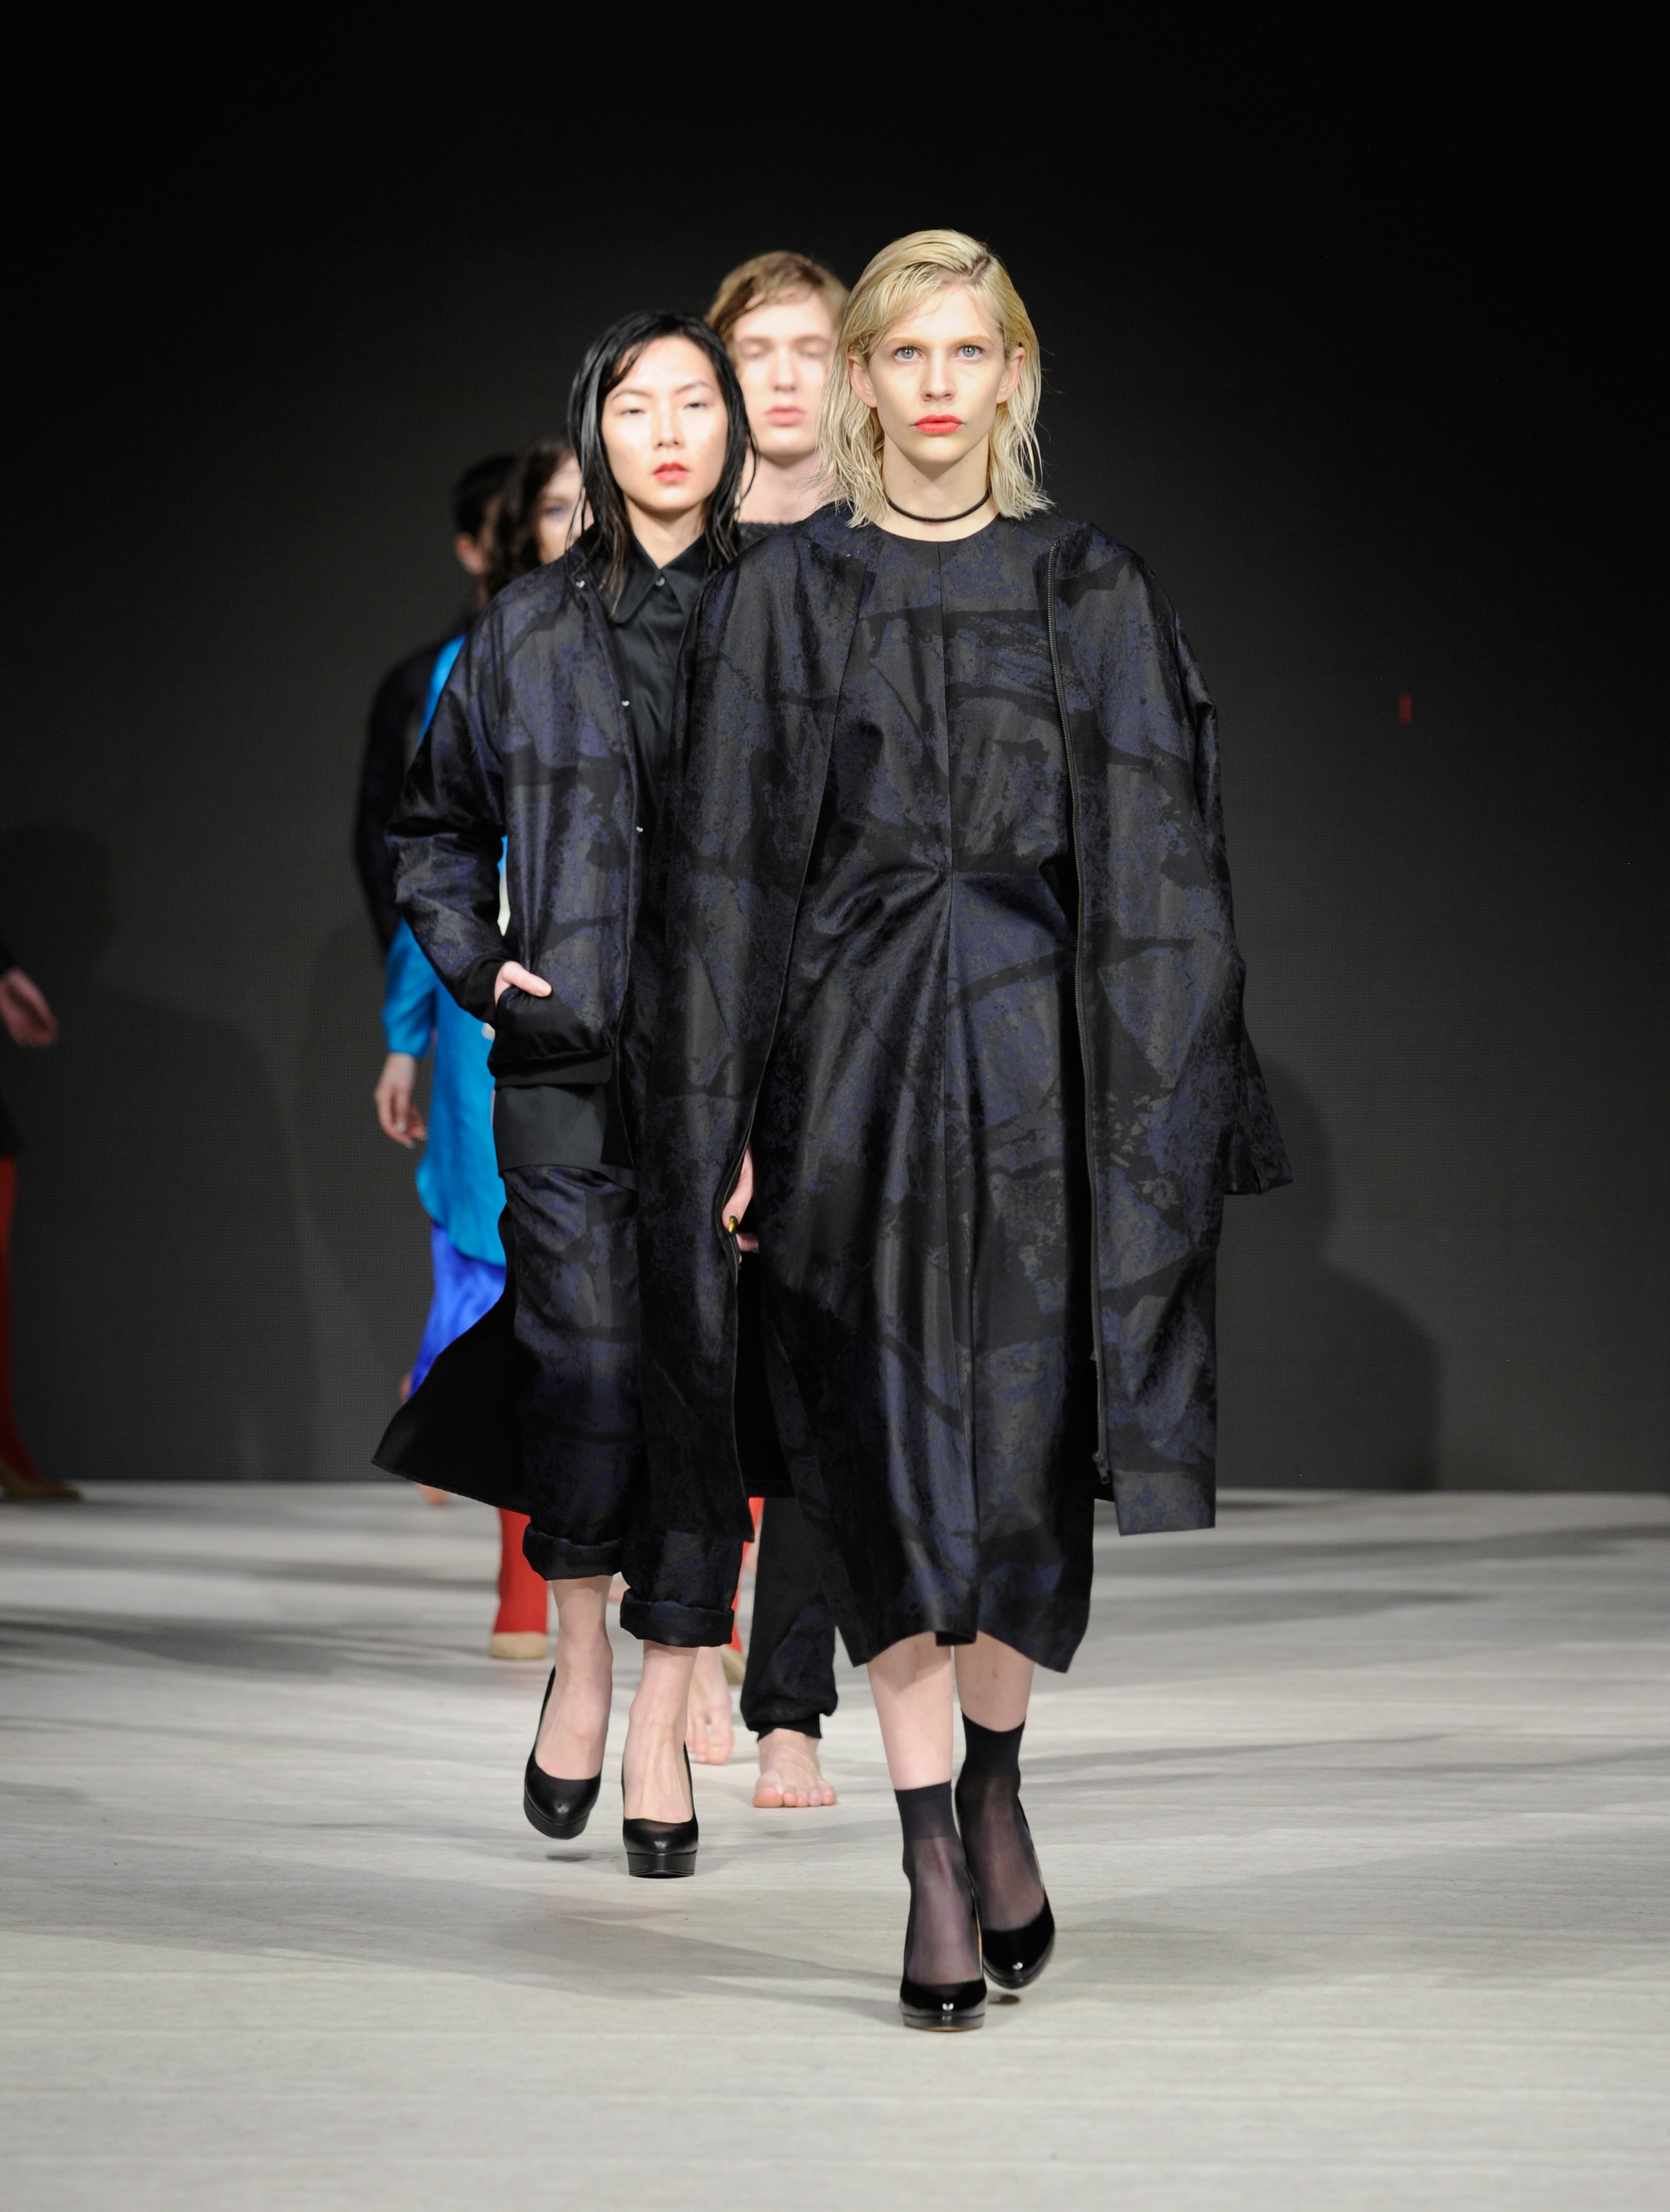 VANCOUVER, BC - MARCH 21:  Models walk the runway wearing Keem at Vancouver Fashion Week Fall/Winter 2017  at Chinese Cultural Centre of Greater Vancouver on March 21, 2017 in Vancouver, Canada.  (Photo by Arun Nevader/WireImage)